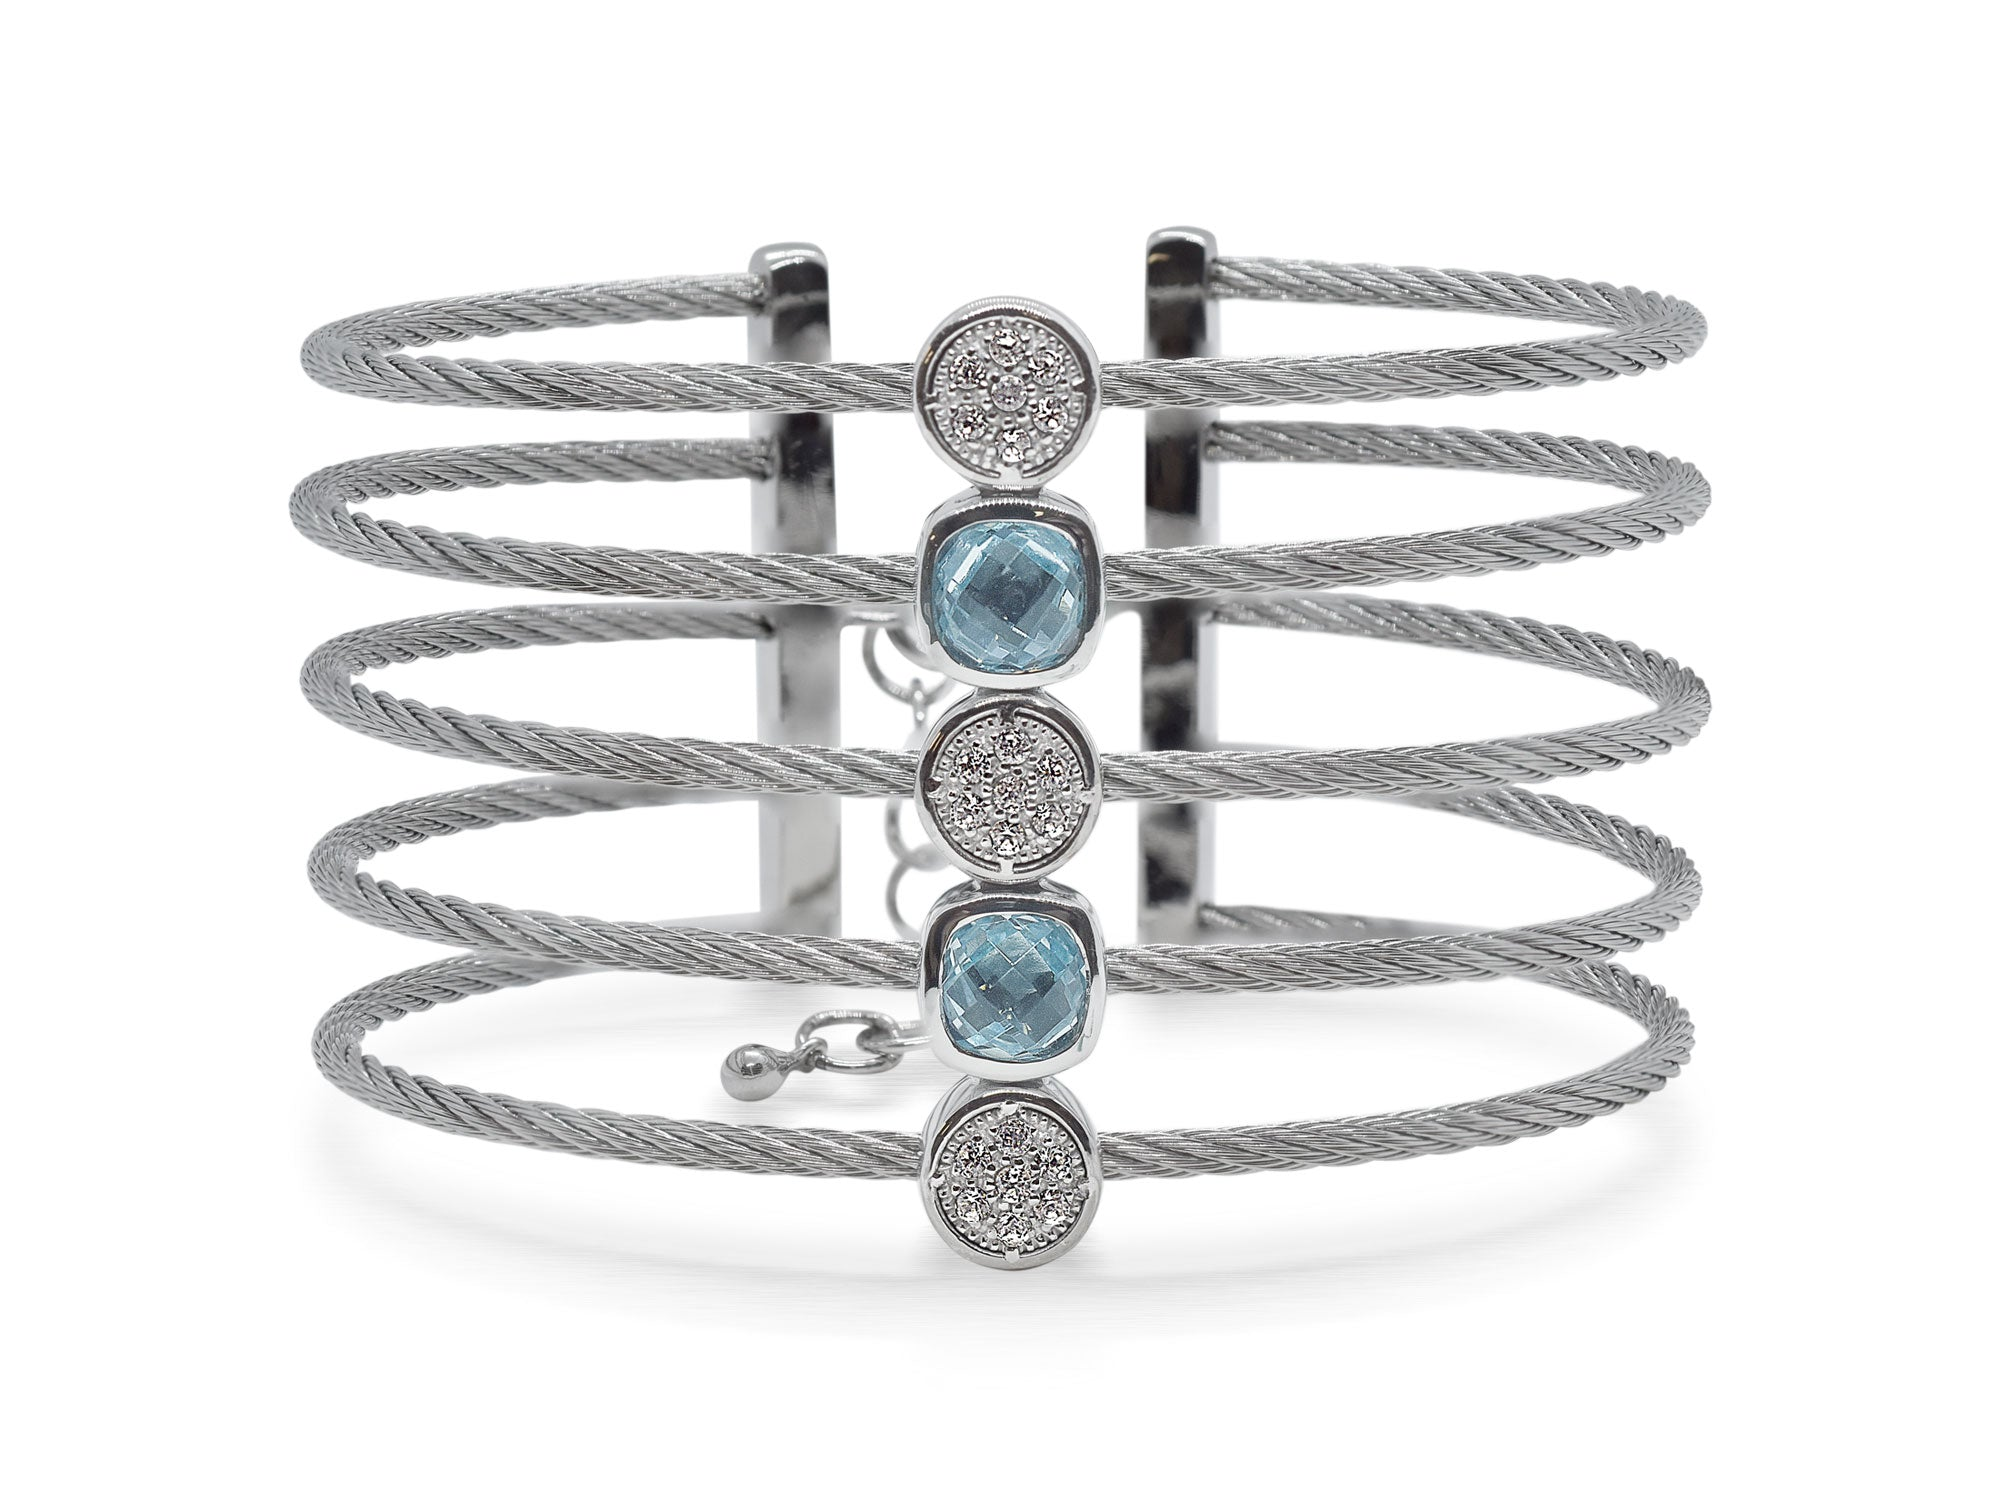 ALOR Burano Multi-Strand Silver Cable Bangle with Separated Stations in Diamond and Light Blue Onyx